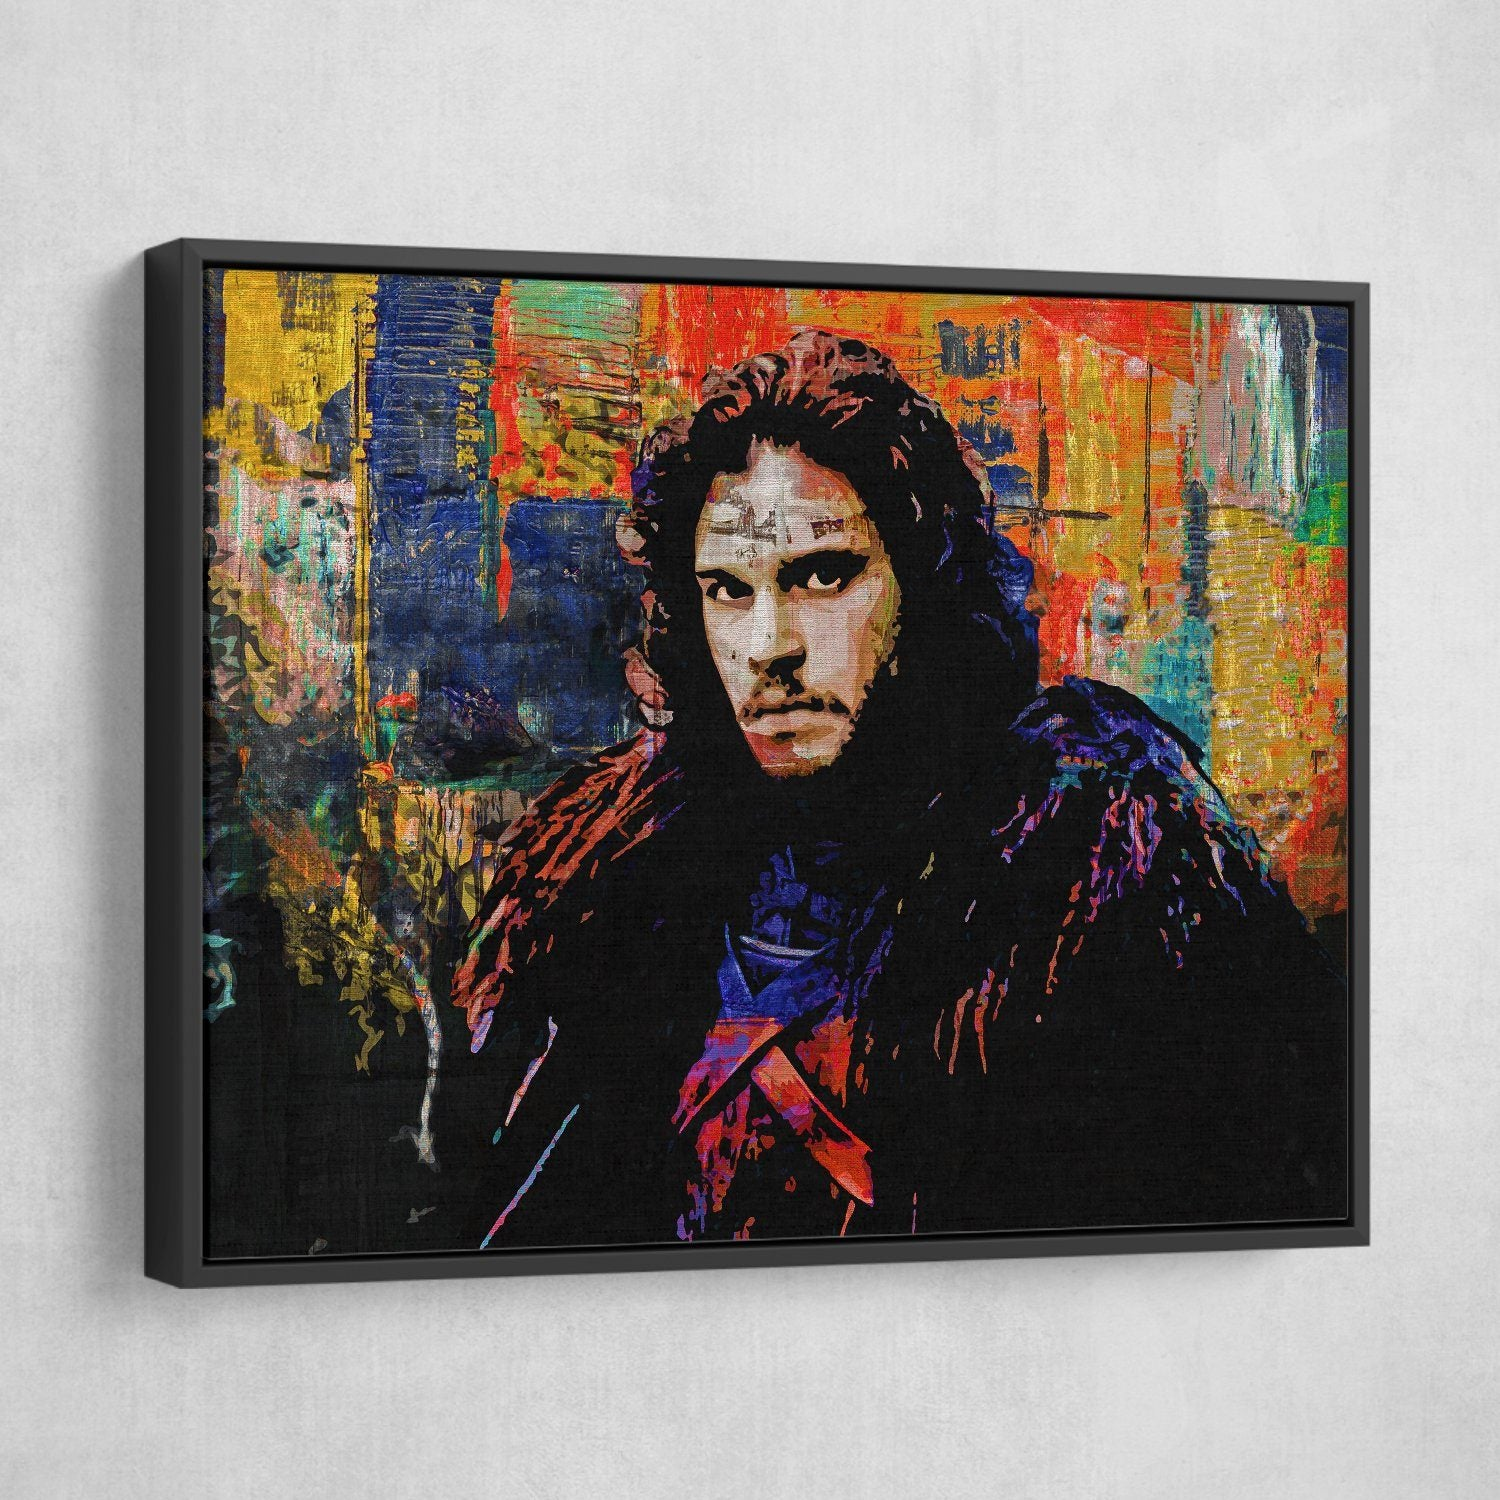 Jon snow wall art